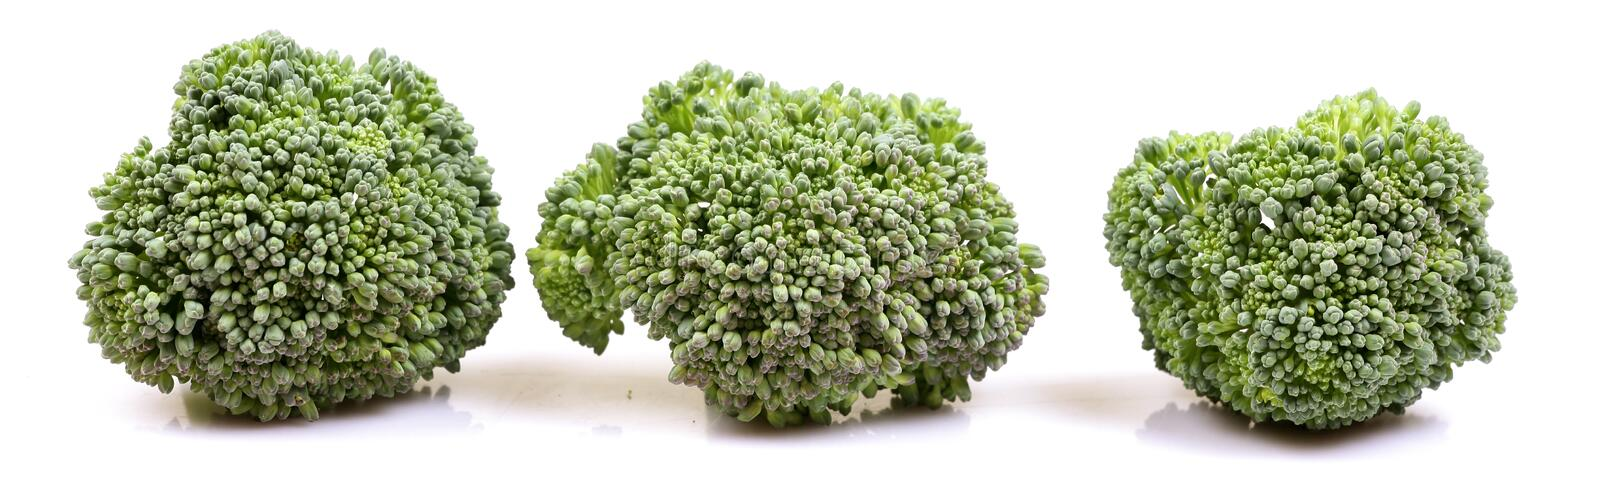 Download Green broccoli banner stock image. Image of background - 18102583